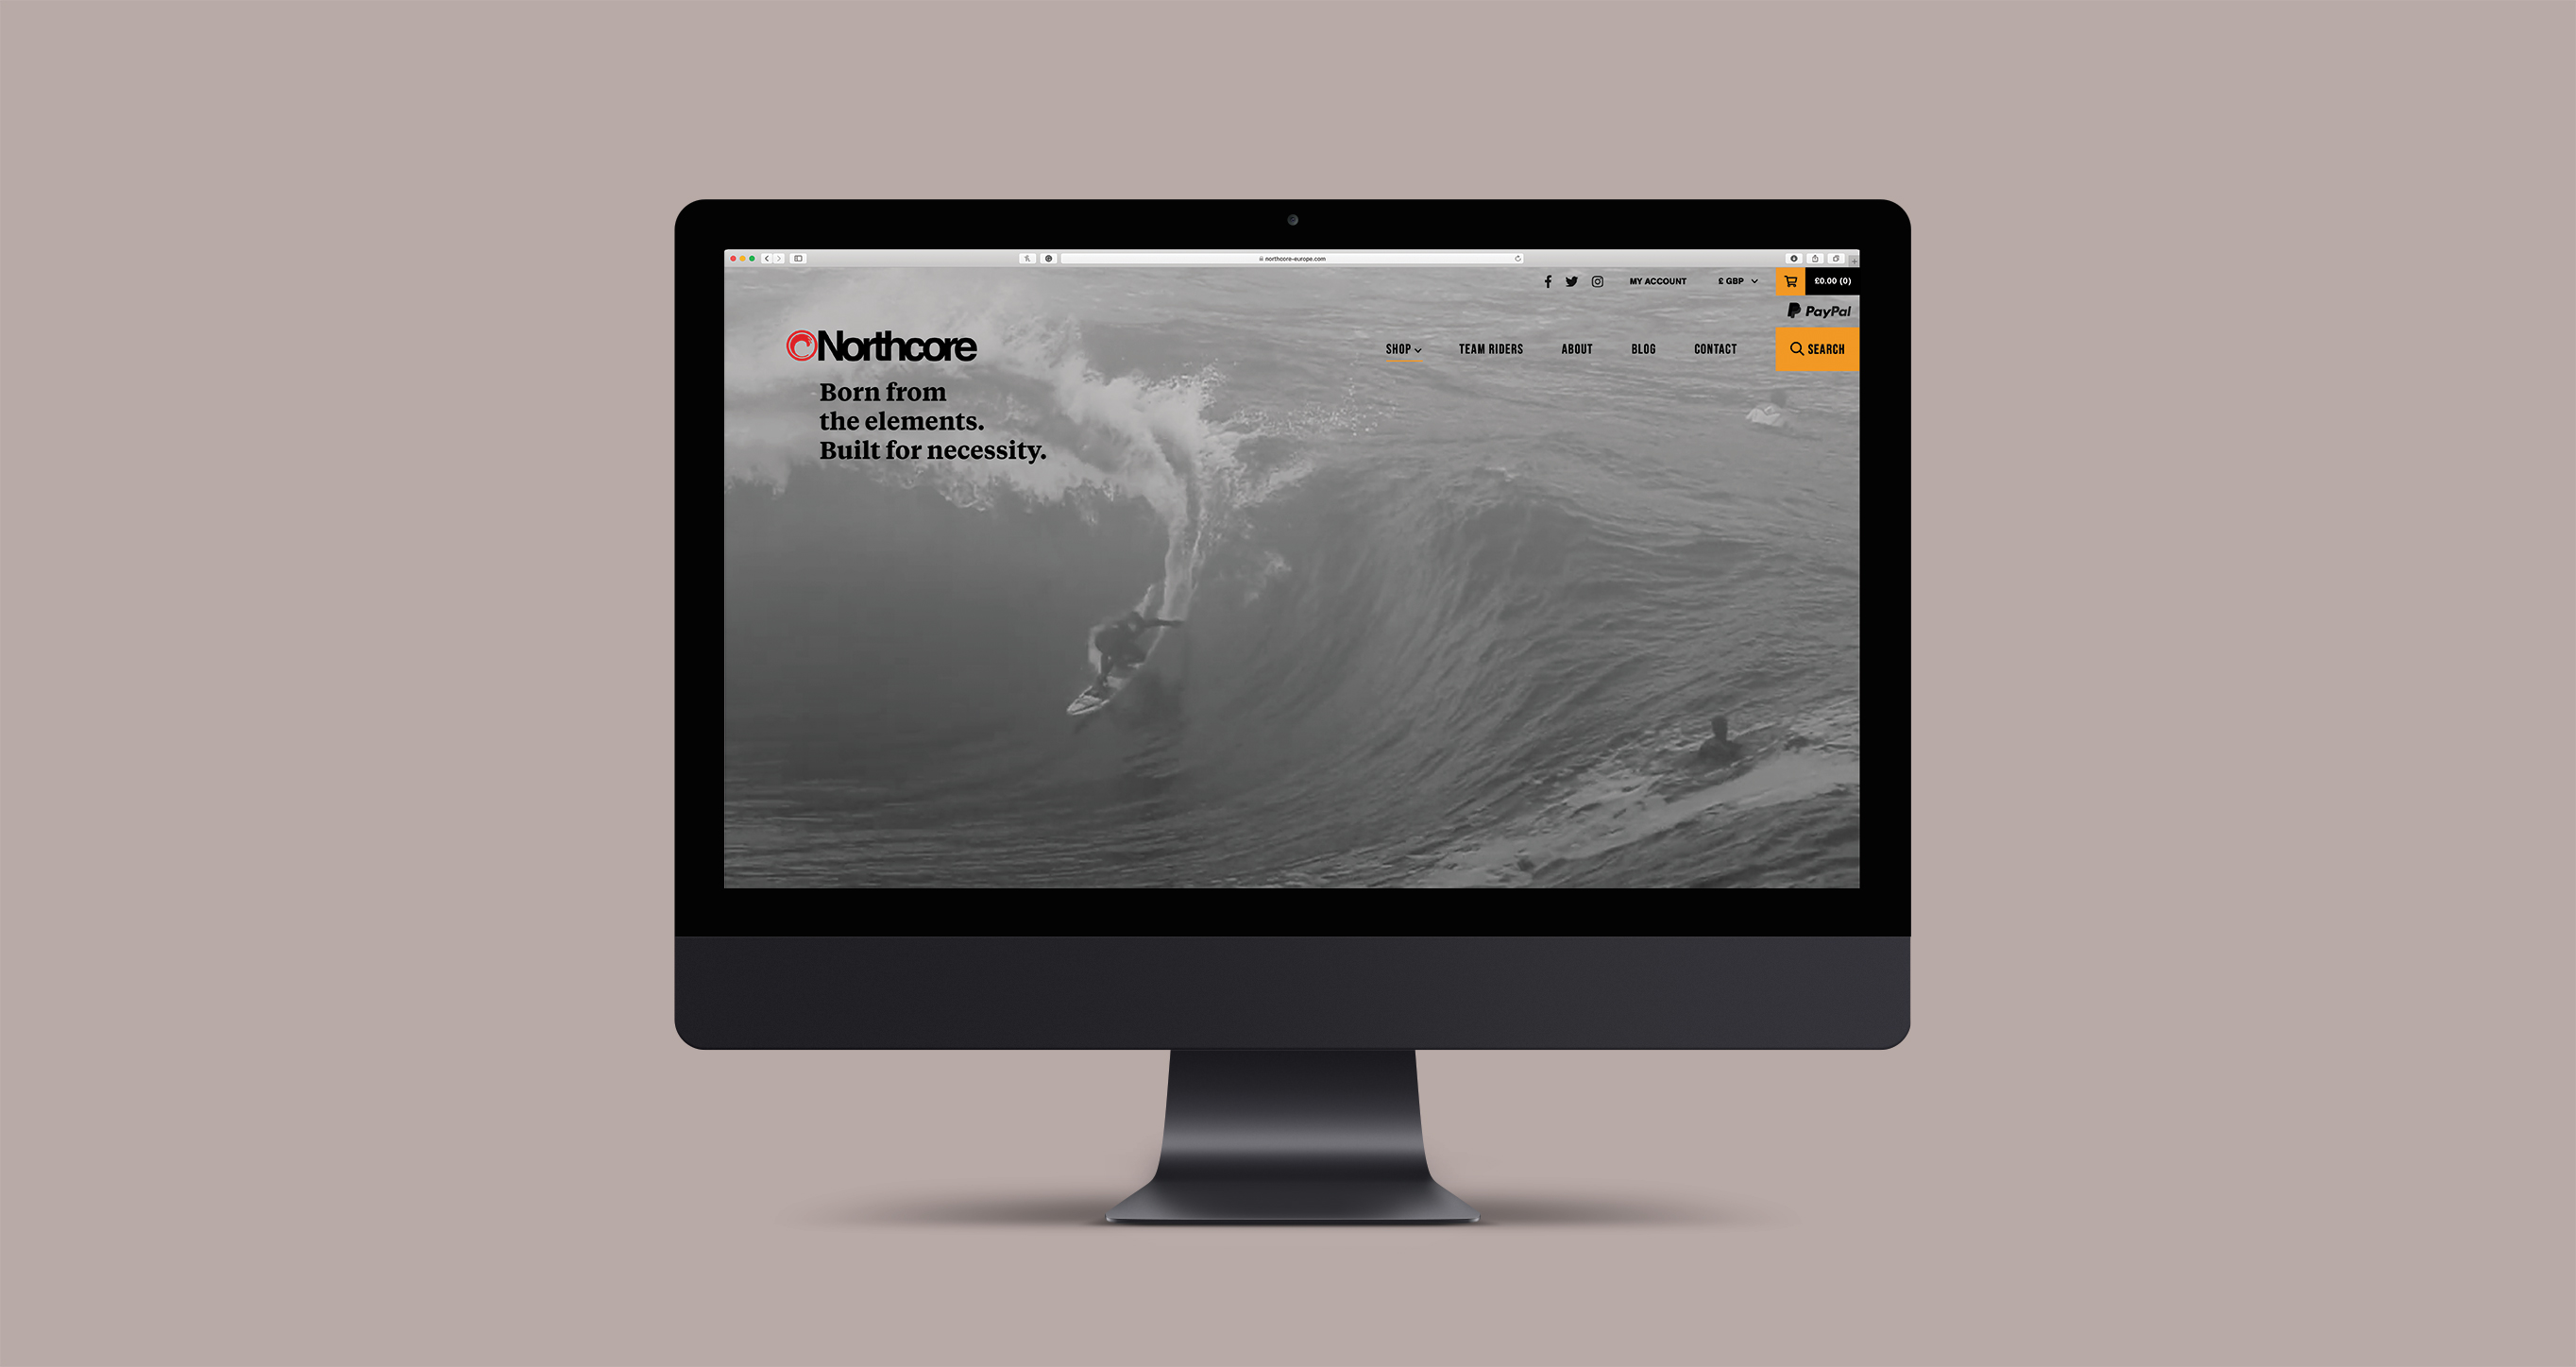 Northcore website design